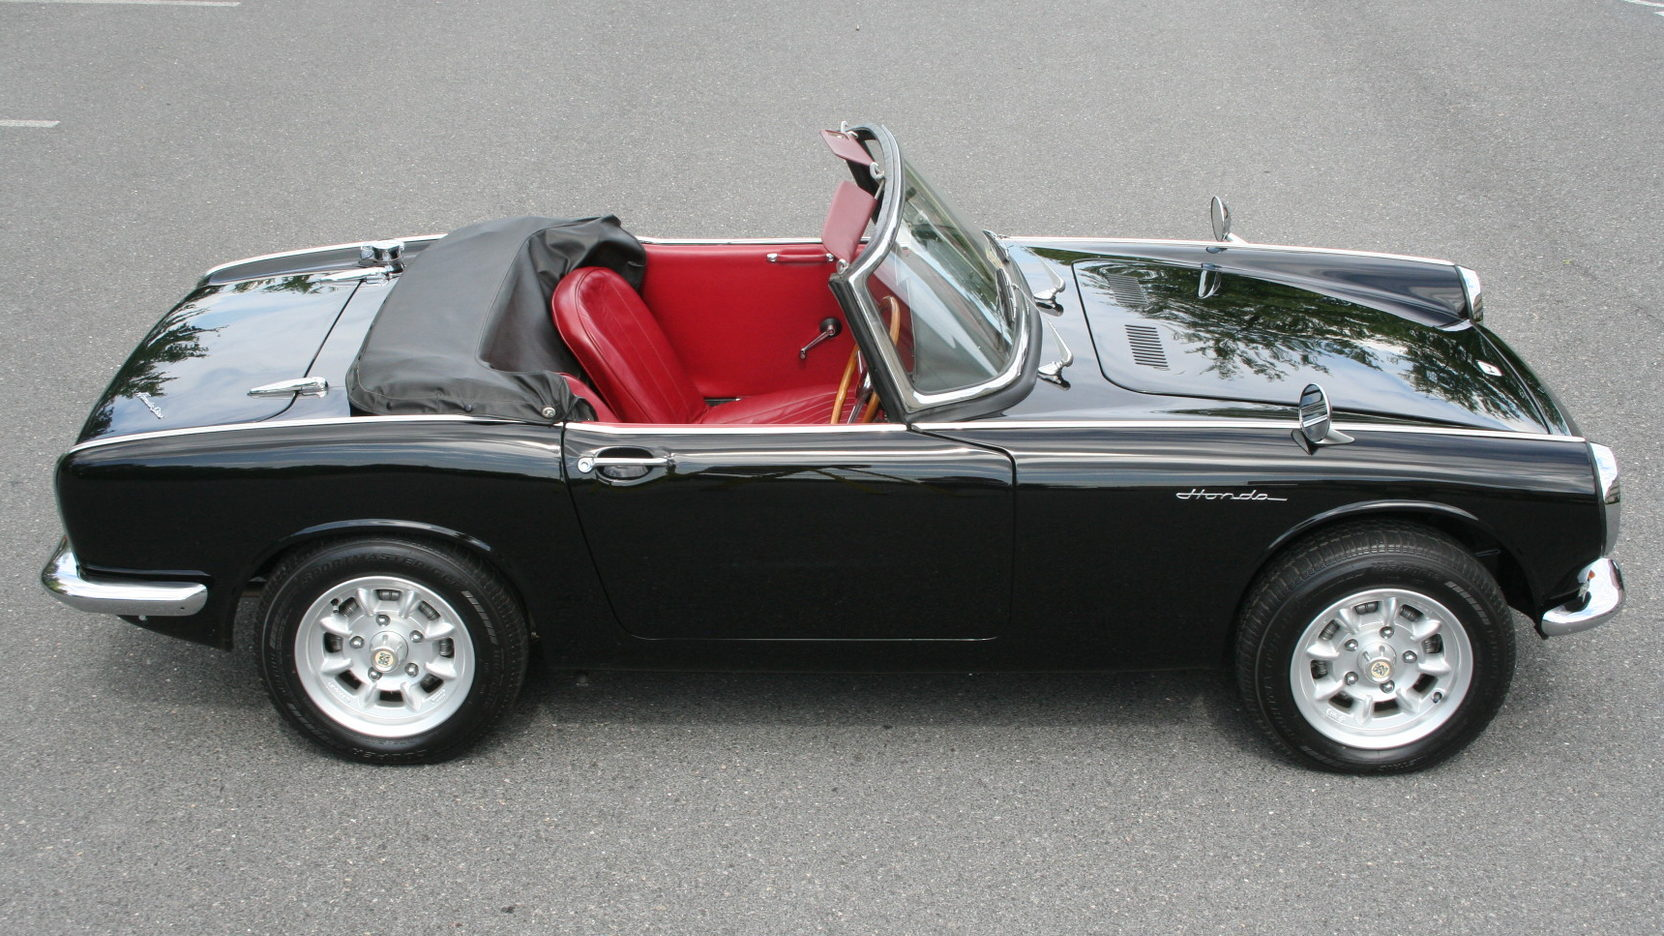 Superb 1965 Honda S600 #19